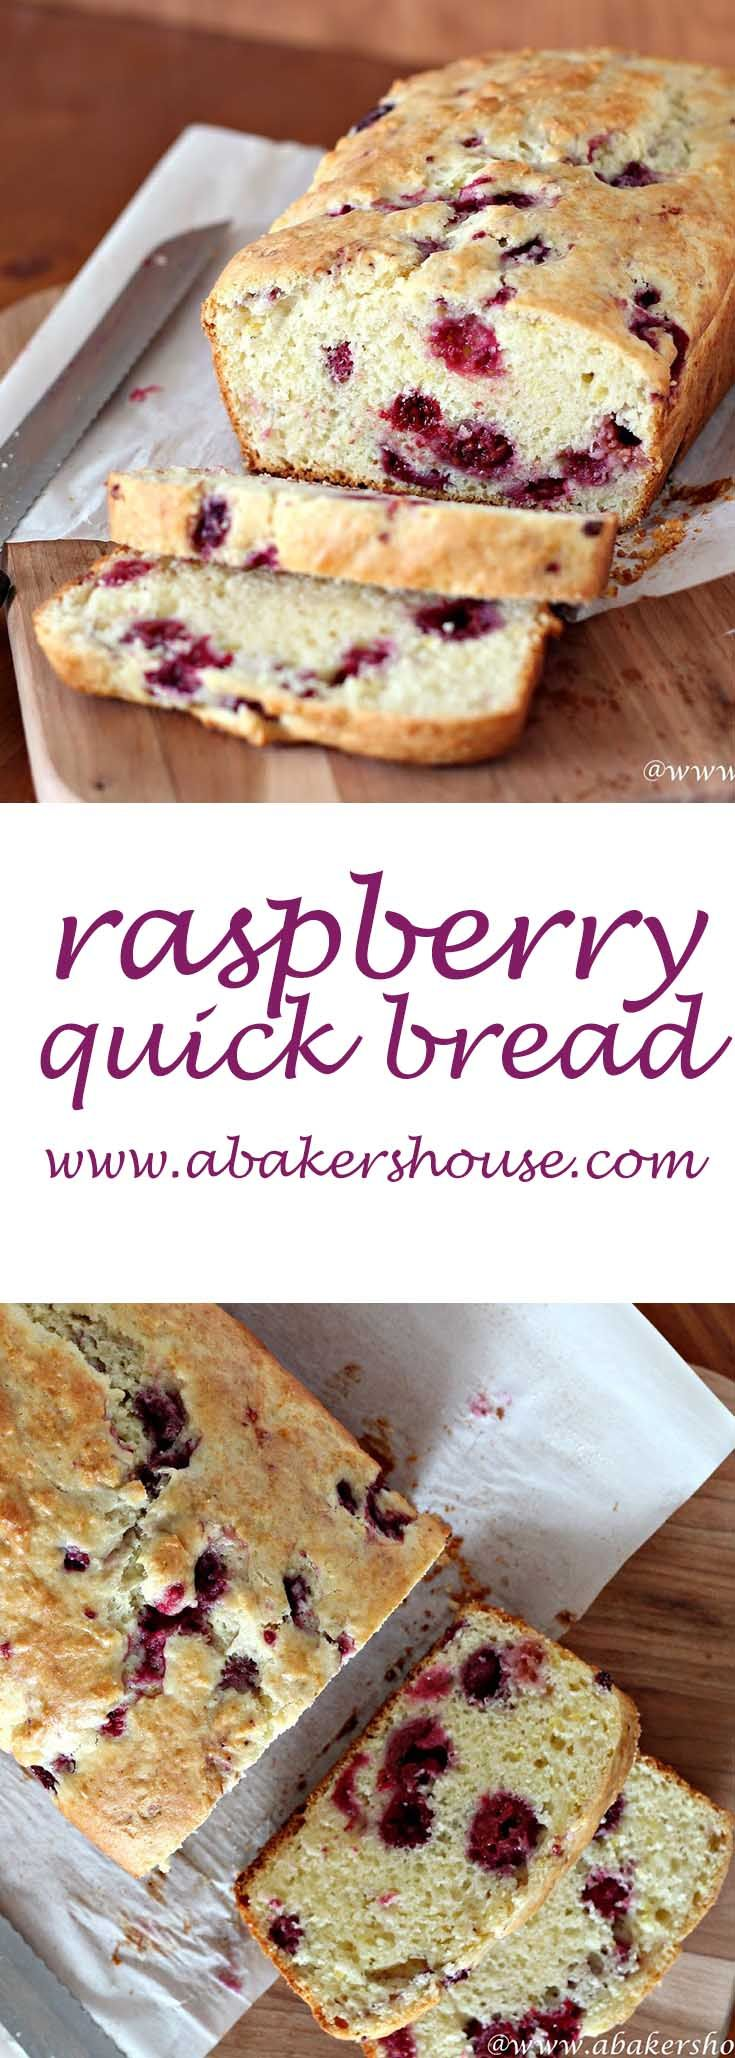 This raspberry quick bread that comes together in about an hour and can be ready for your afternoon cup of tea. I used raspberries (frozen, in fact), but blueberries, cranberries or cherries would all work. Fresh or frozen, berries in this bread add a sweetness and color that make this a recipe to keep handy. Made by Holly Baker at www.abakershouse.com